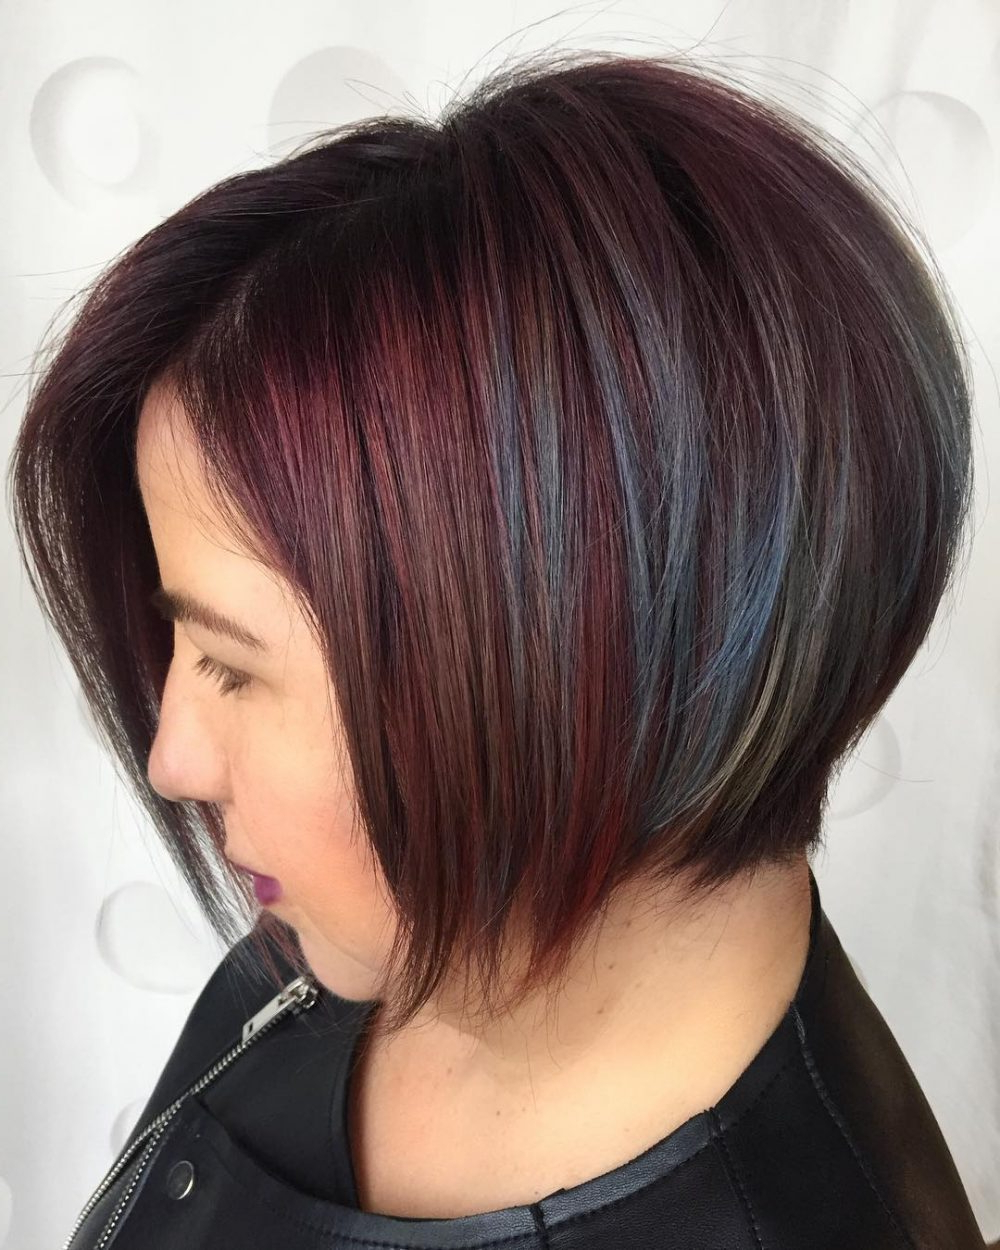 34 Greatest Short Haircuts And Hairstyles For Thick Hair For 2018 Regarding Short Hairstyles For Thick Hair (View 8 of 25)